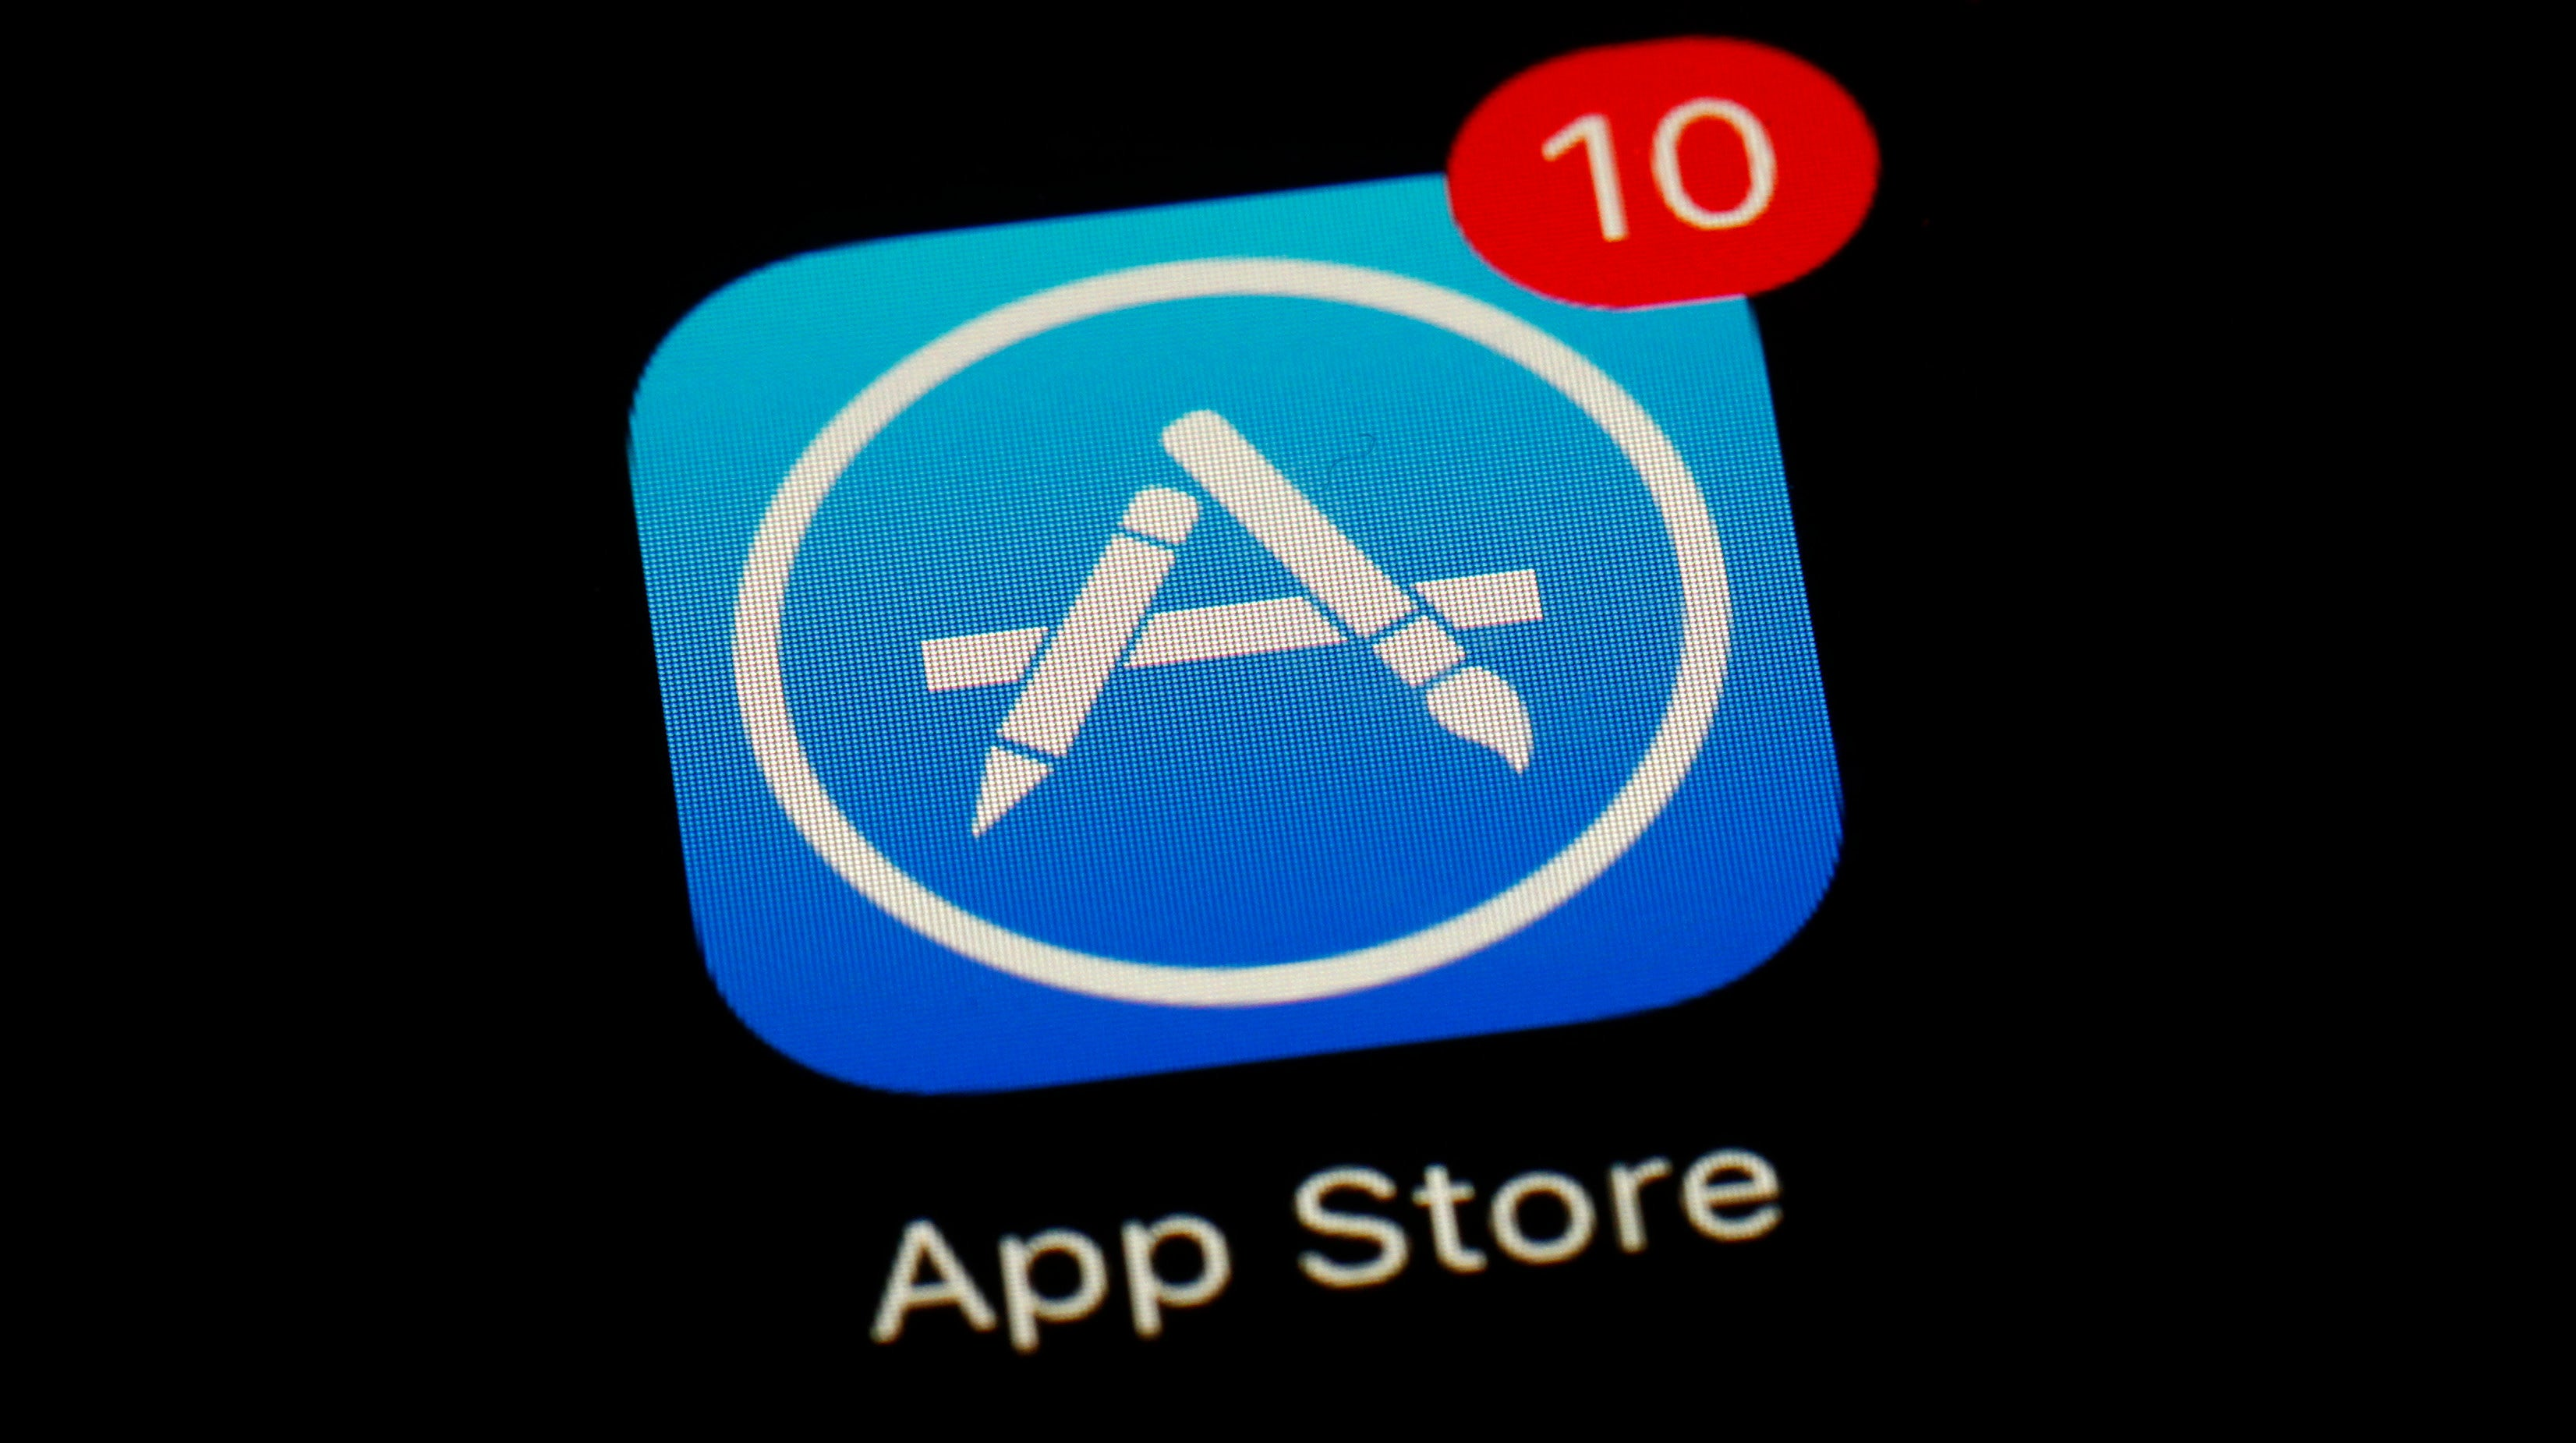 Apple Cracks Down On Coronavirus Apps, Which Is Probably For The Best